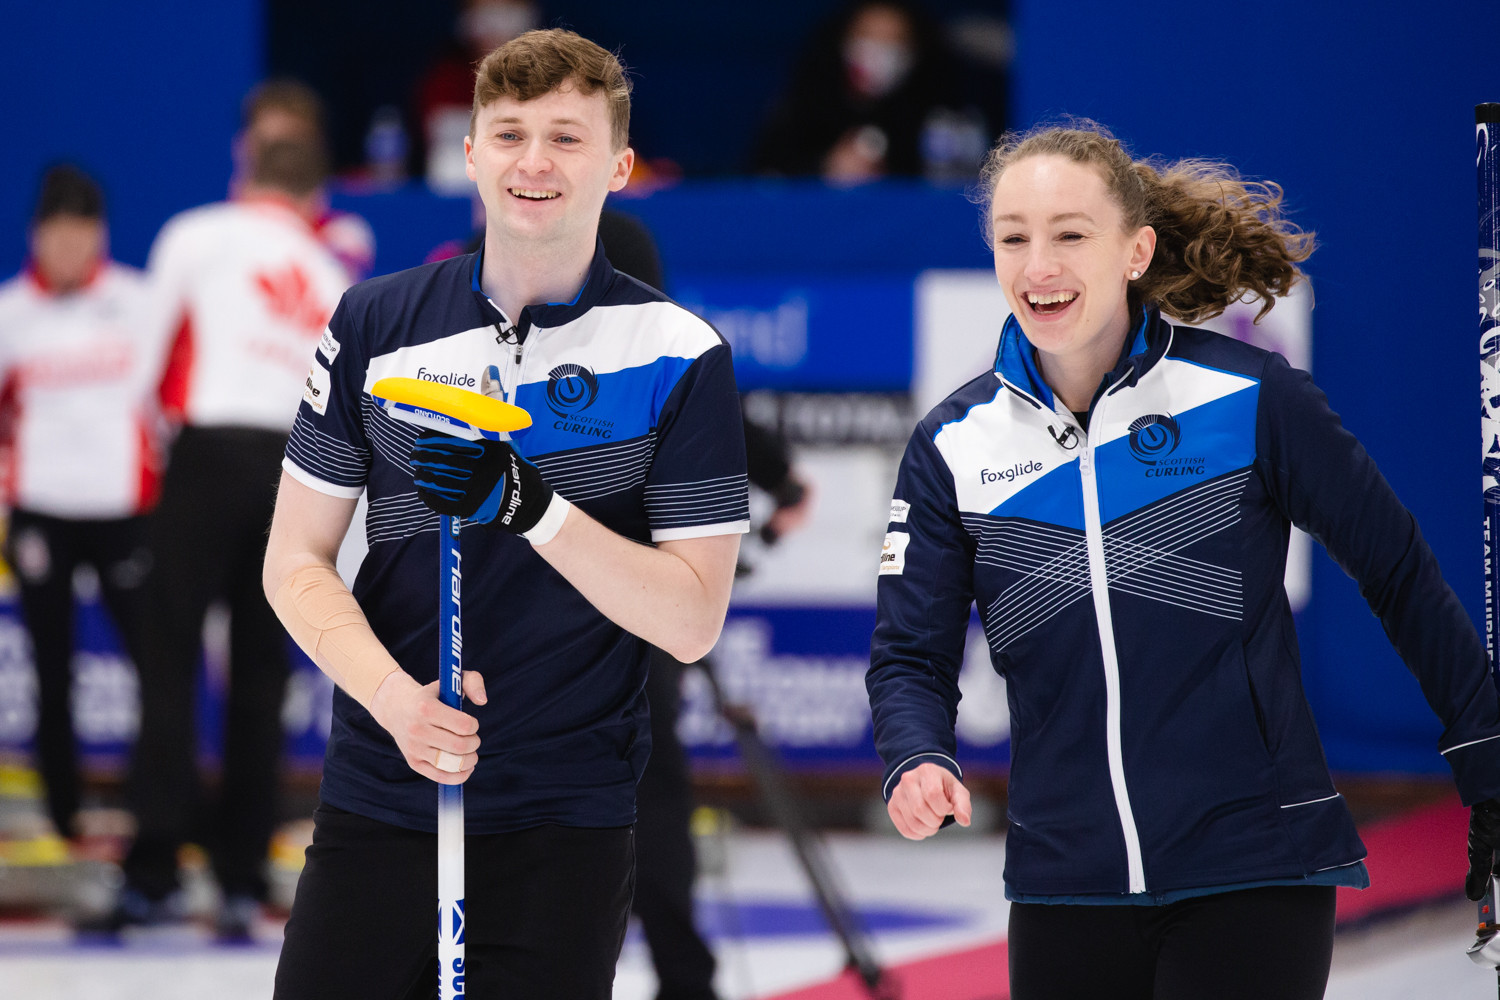 Scotland and Sweden secure automatic semi-final places at World Mixed Doubles Curling Championship